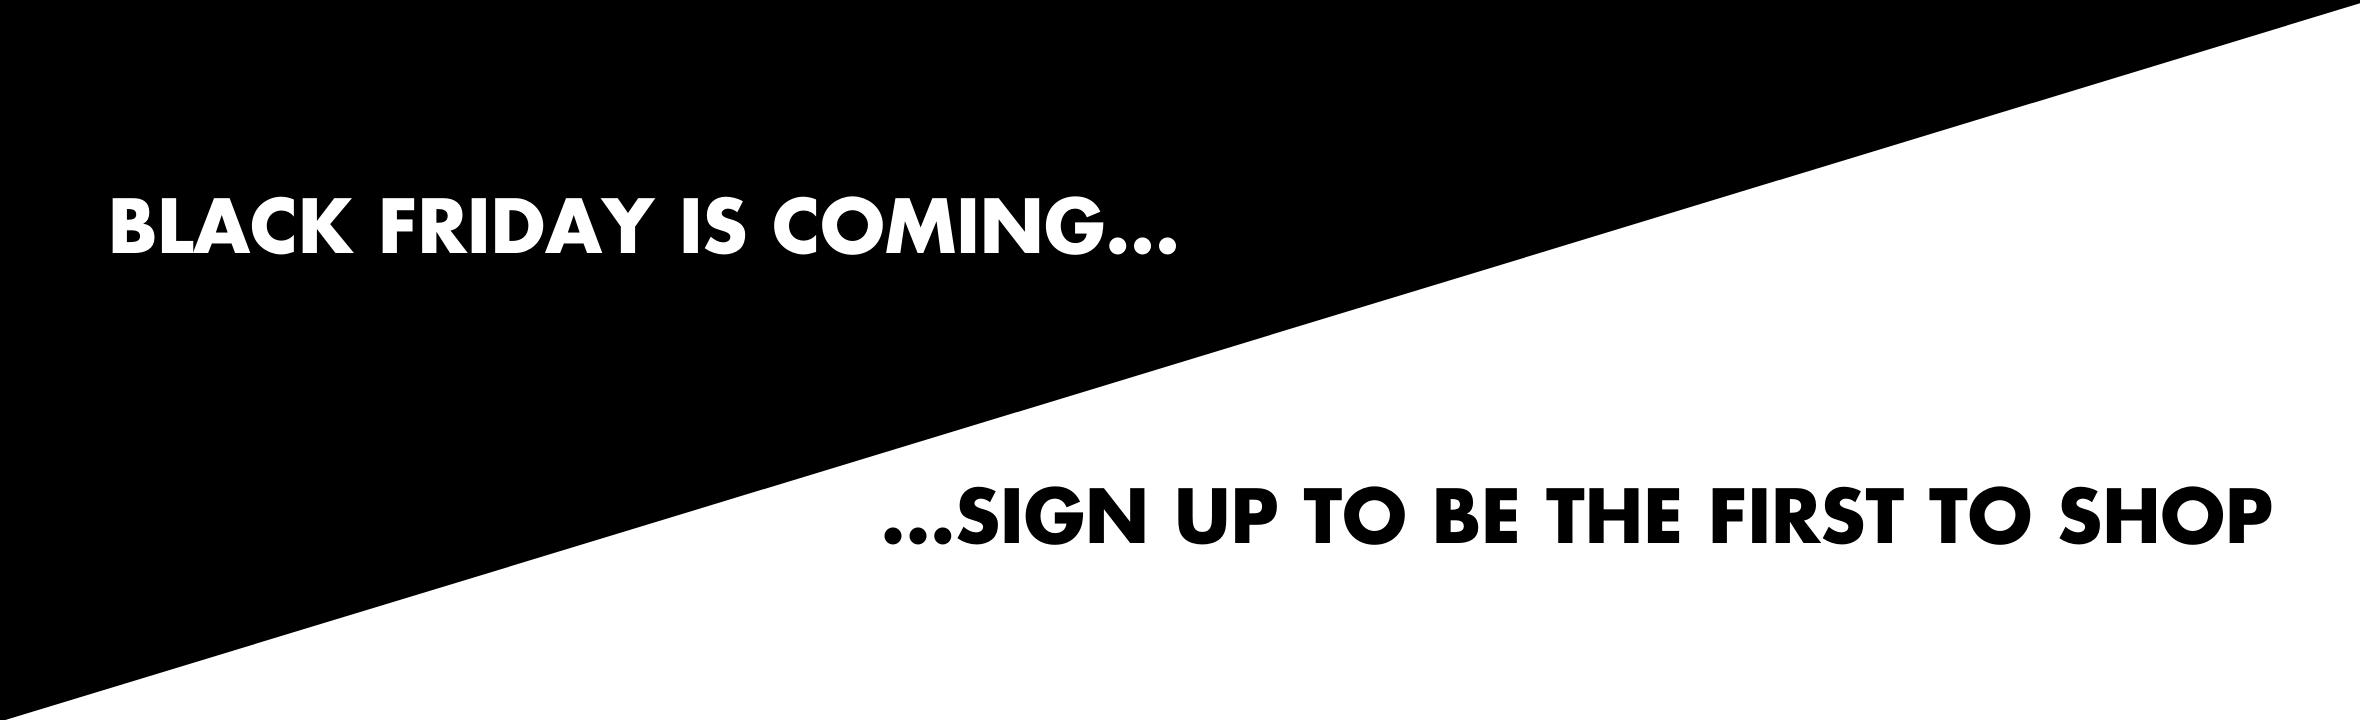 Black Friday Is Coming. Sign Up To Be The First To Shop